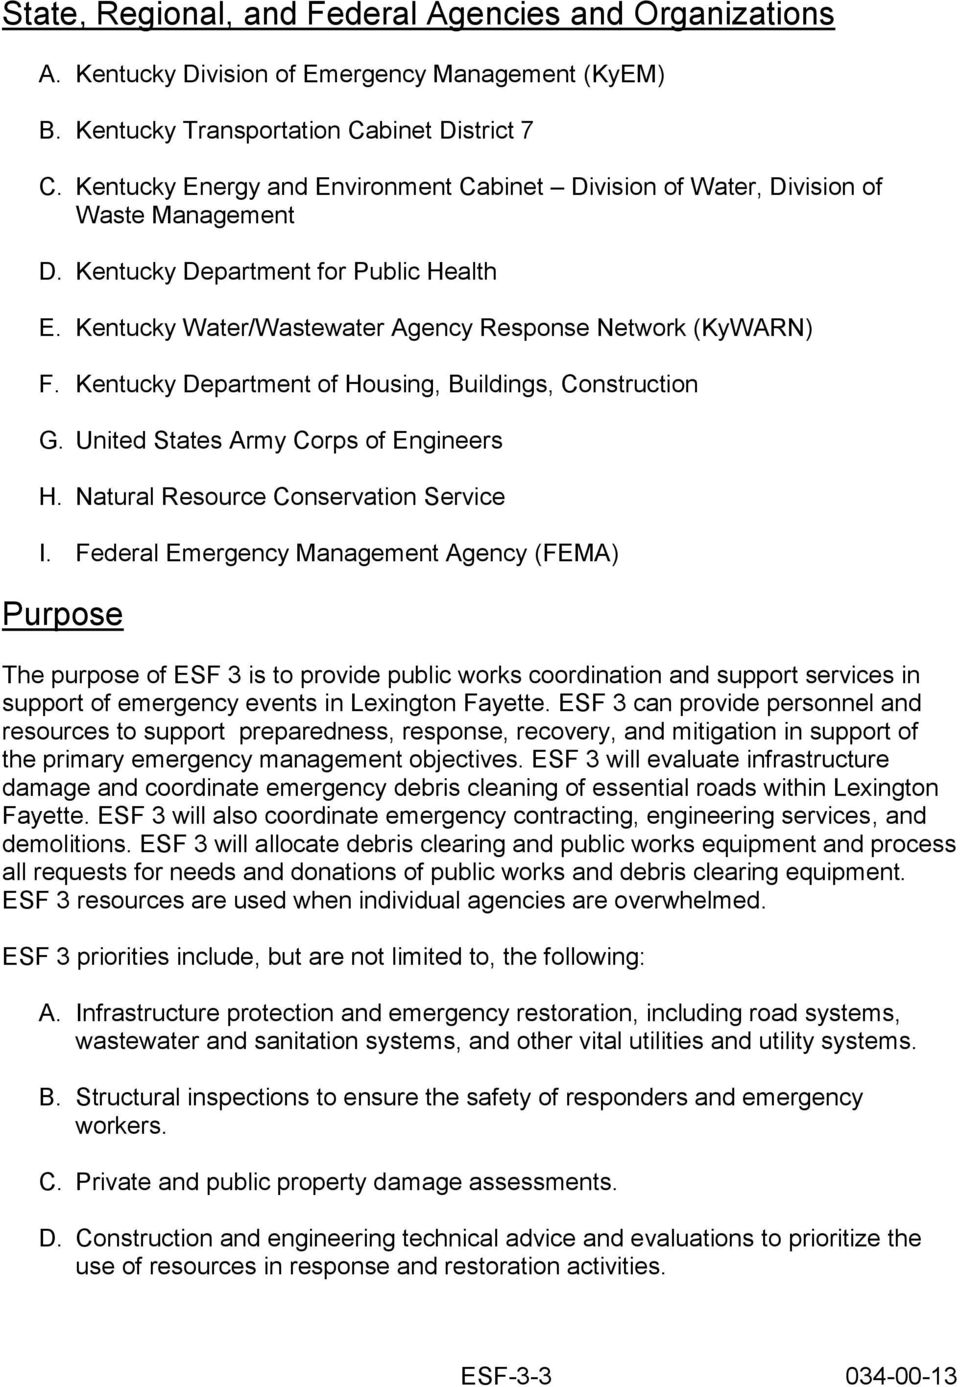 Kentucky Department of Housing, Buildings, Construction G. United States Army Corps of Engineers H. Natural Resource Conservation Service I.